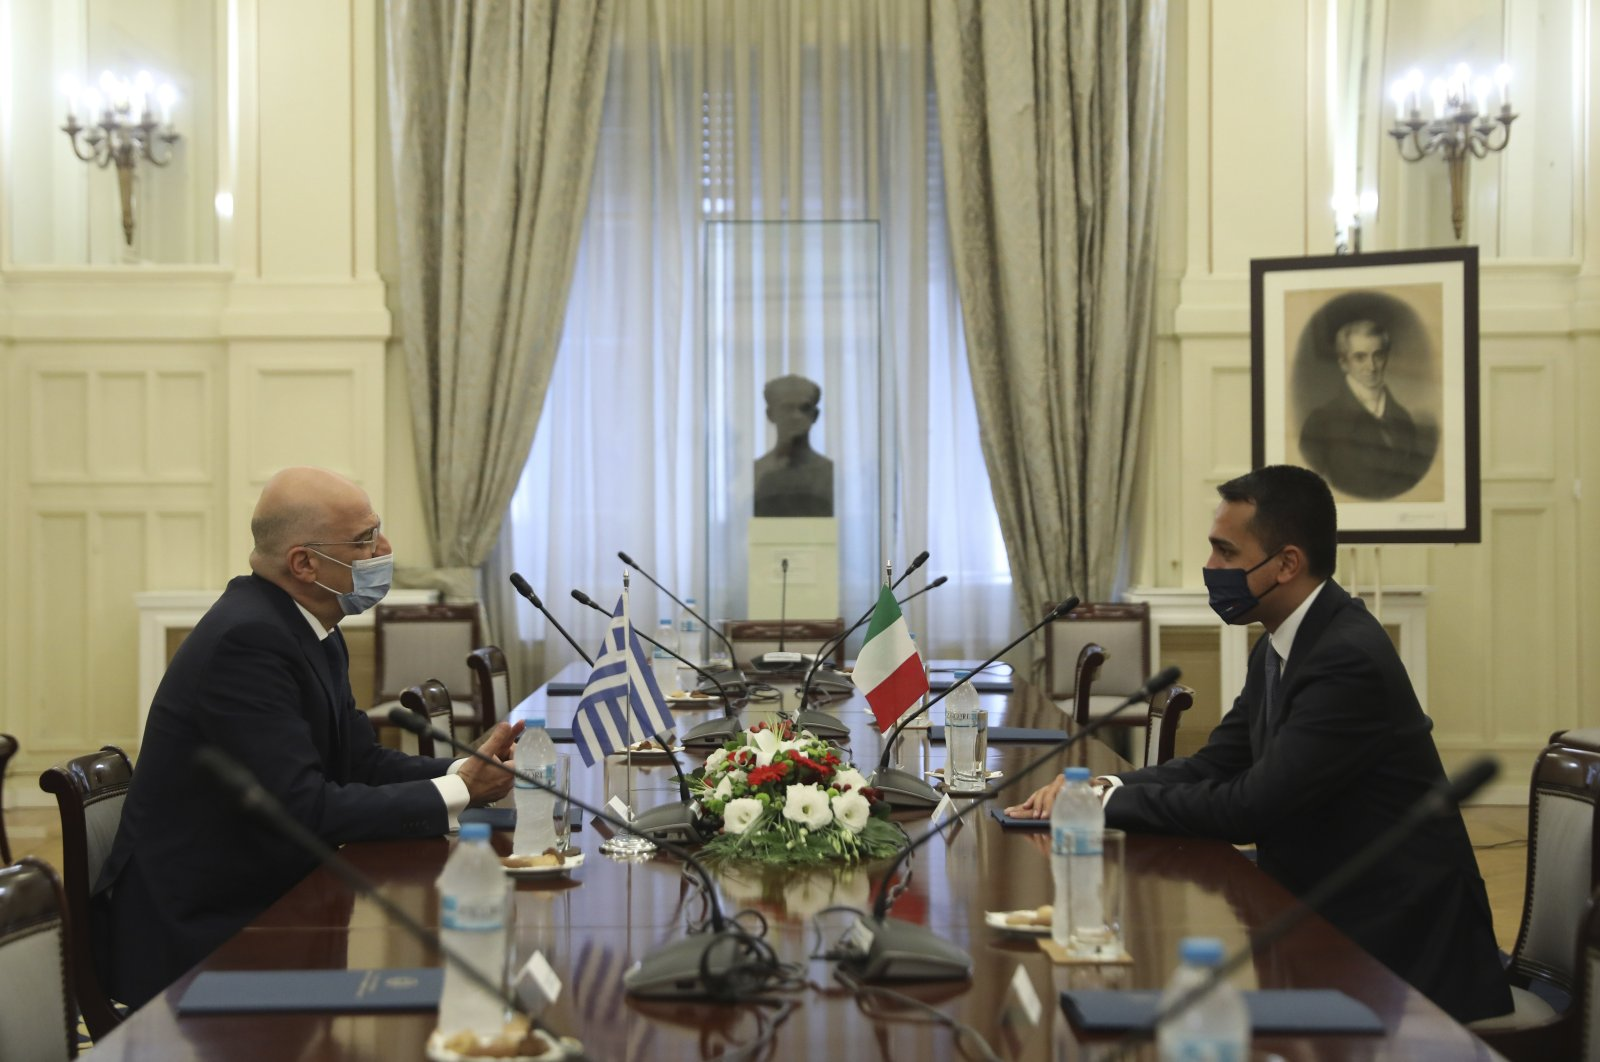 Greek Foreign Minister Nikos Dendias (L) meets with his Italian counterpart Luigi Di Maio at the Foreign Ministry in Athens, Greece, June 9, 2020. (AP File Photo)